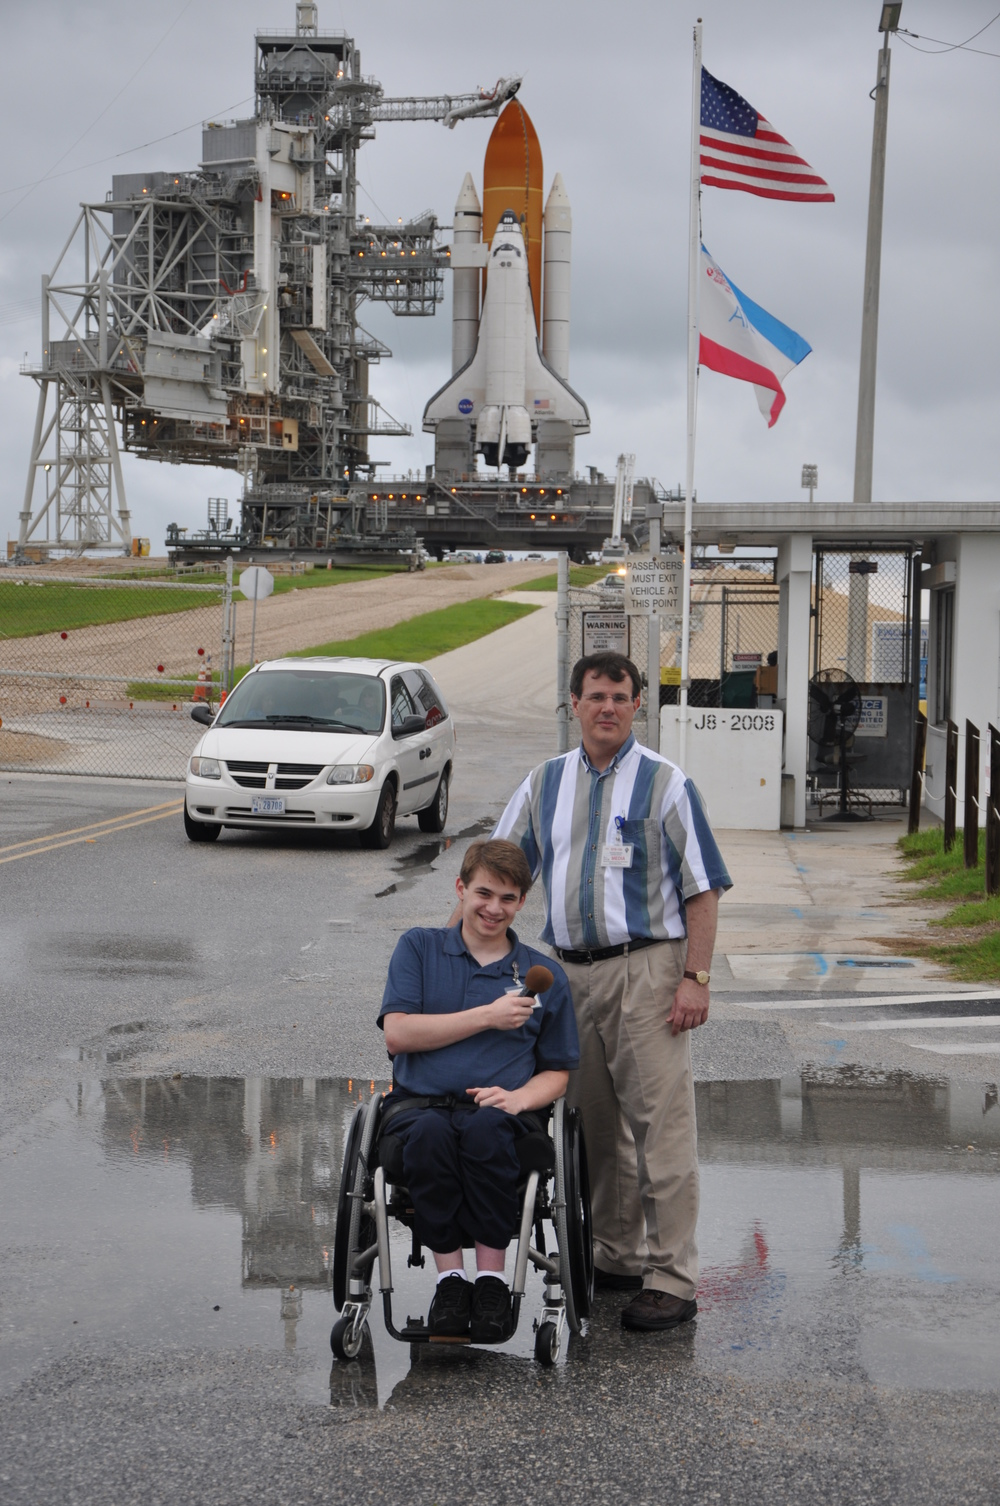 From left to right Sawyer Rosenstein and Gene Mikulka of Talking Space prepare to broadcast the launch of Atlantis by saying goodbye to her before she launches Credit: Sawyer Rosenstein